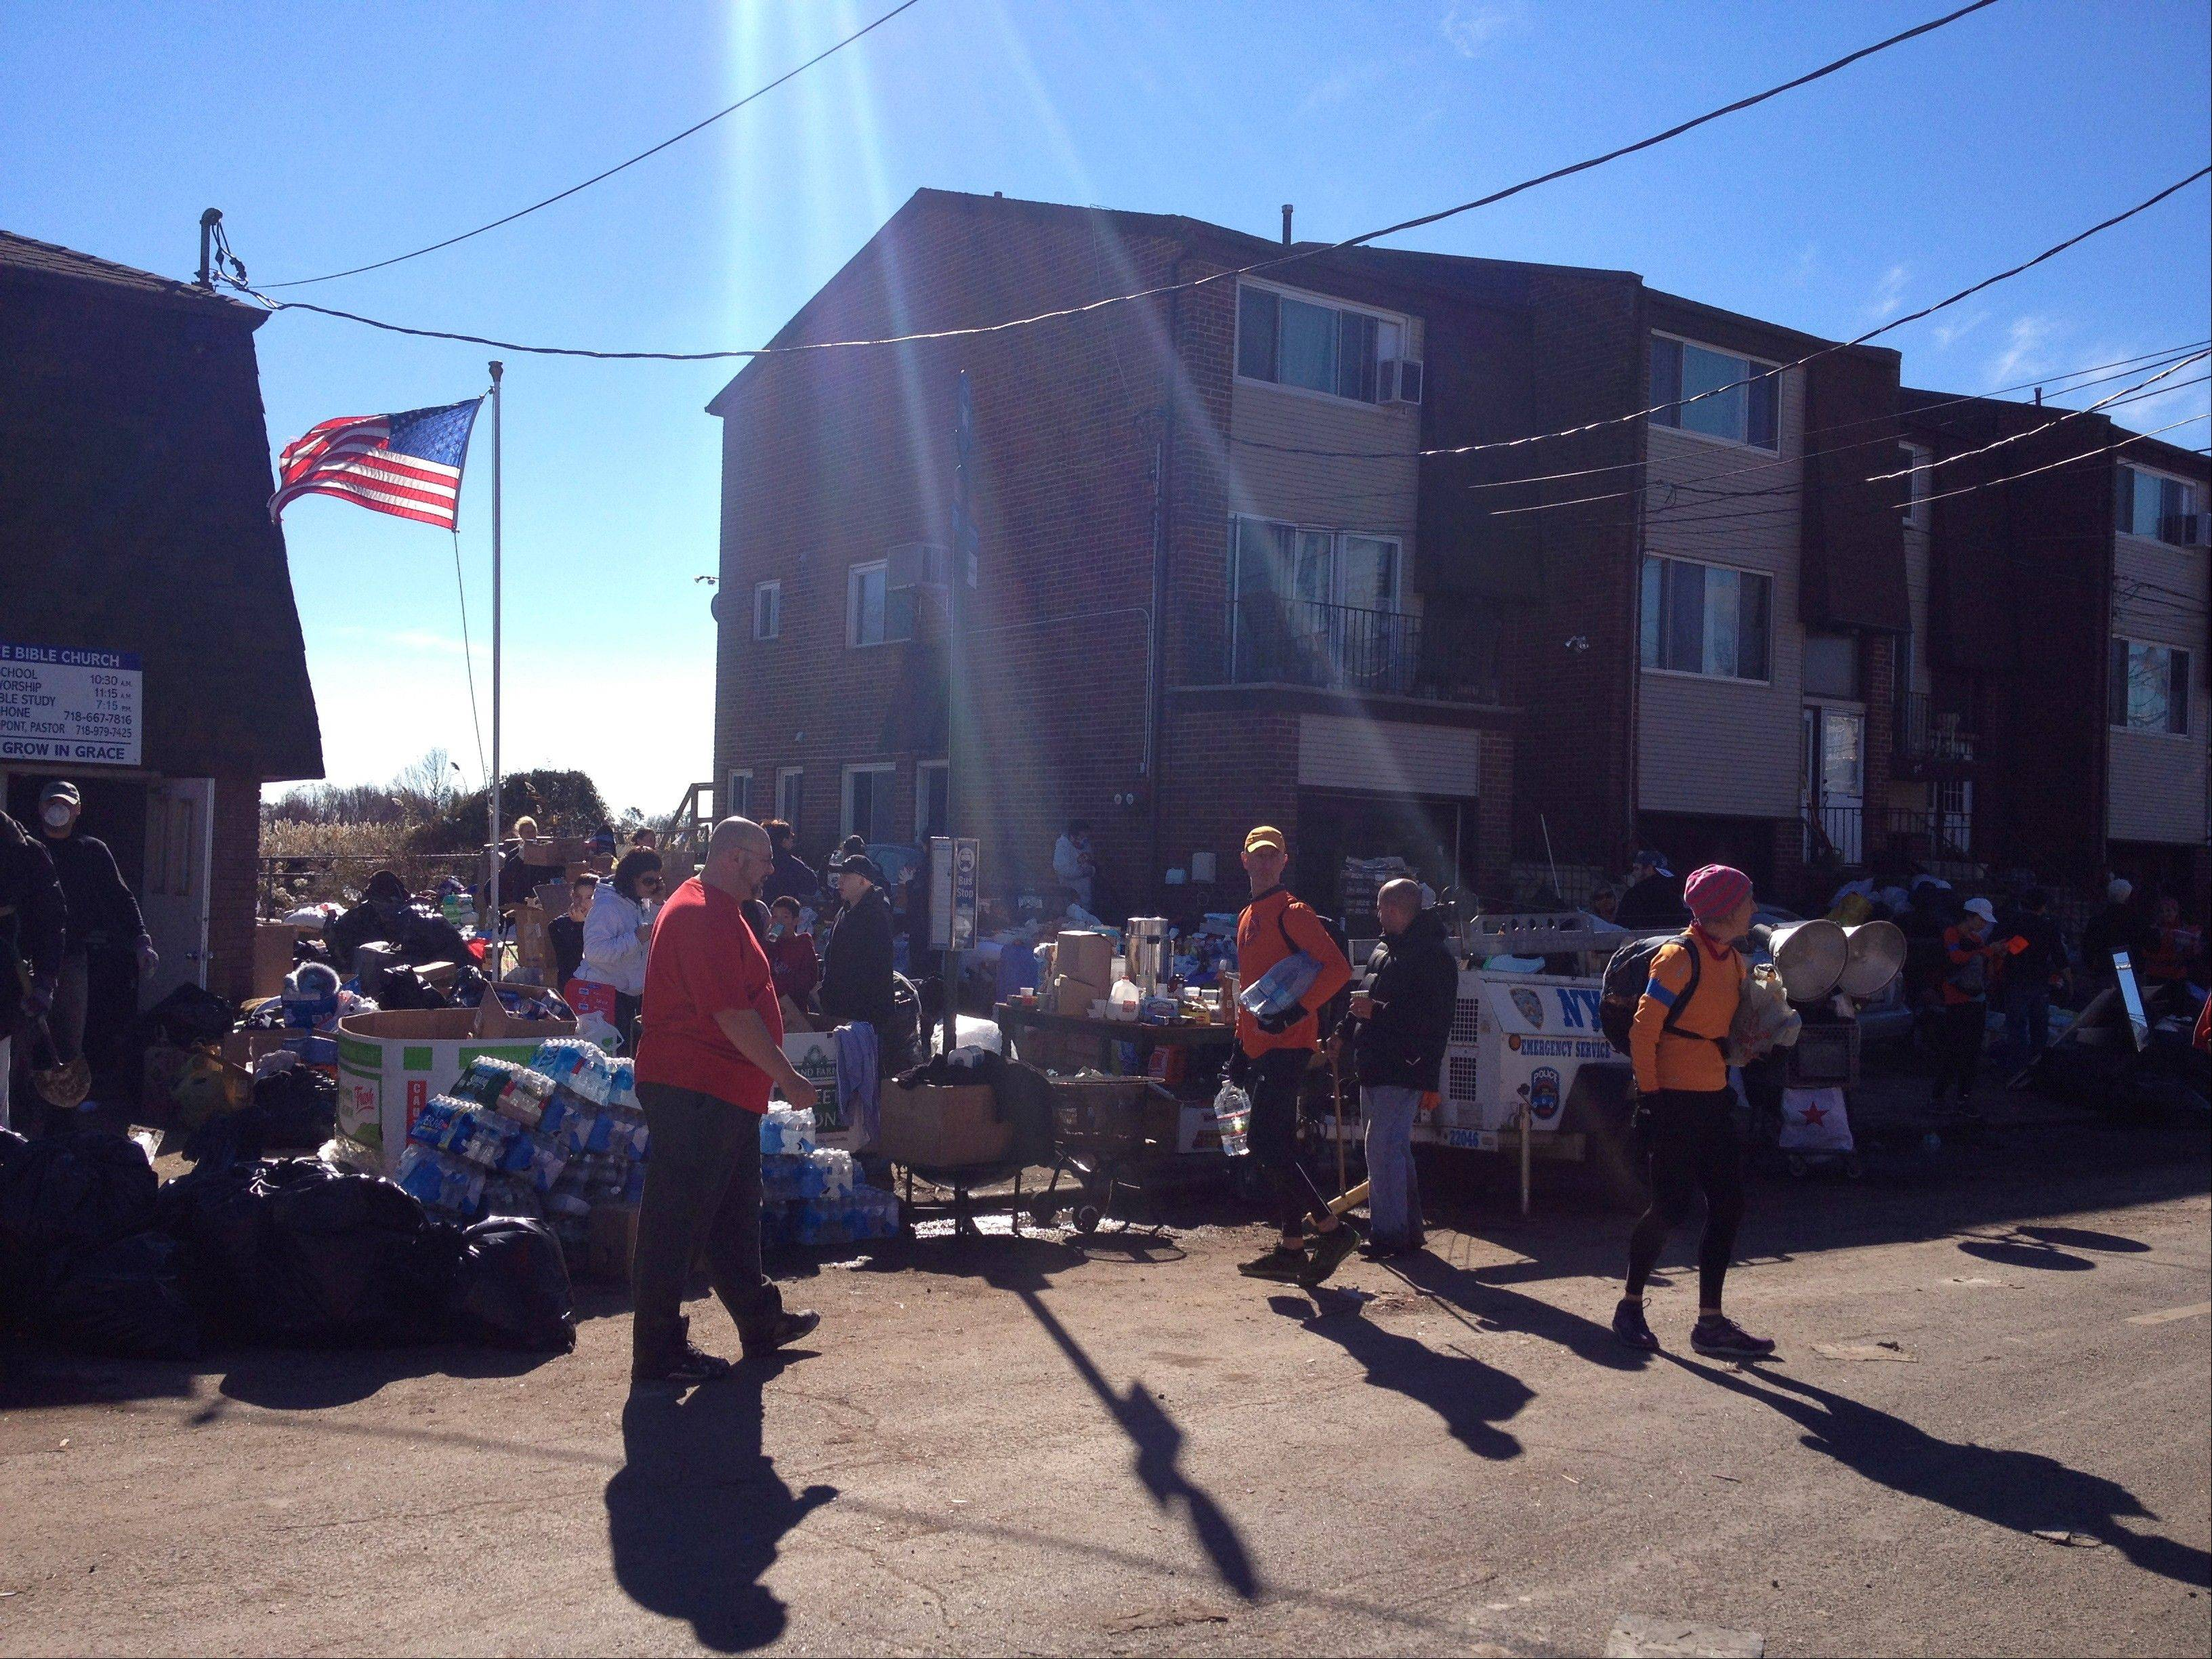 Volunteers help hand out food and water to Staten Island residents Nov. 4 during relief efforts in the wake of Hurricane Sandy. The group of largely would-be marathoners was organized by NYC Marathon of Relief Efforts once the race was canceled and runners were left with an open day.